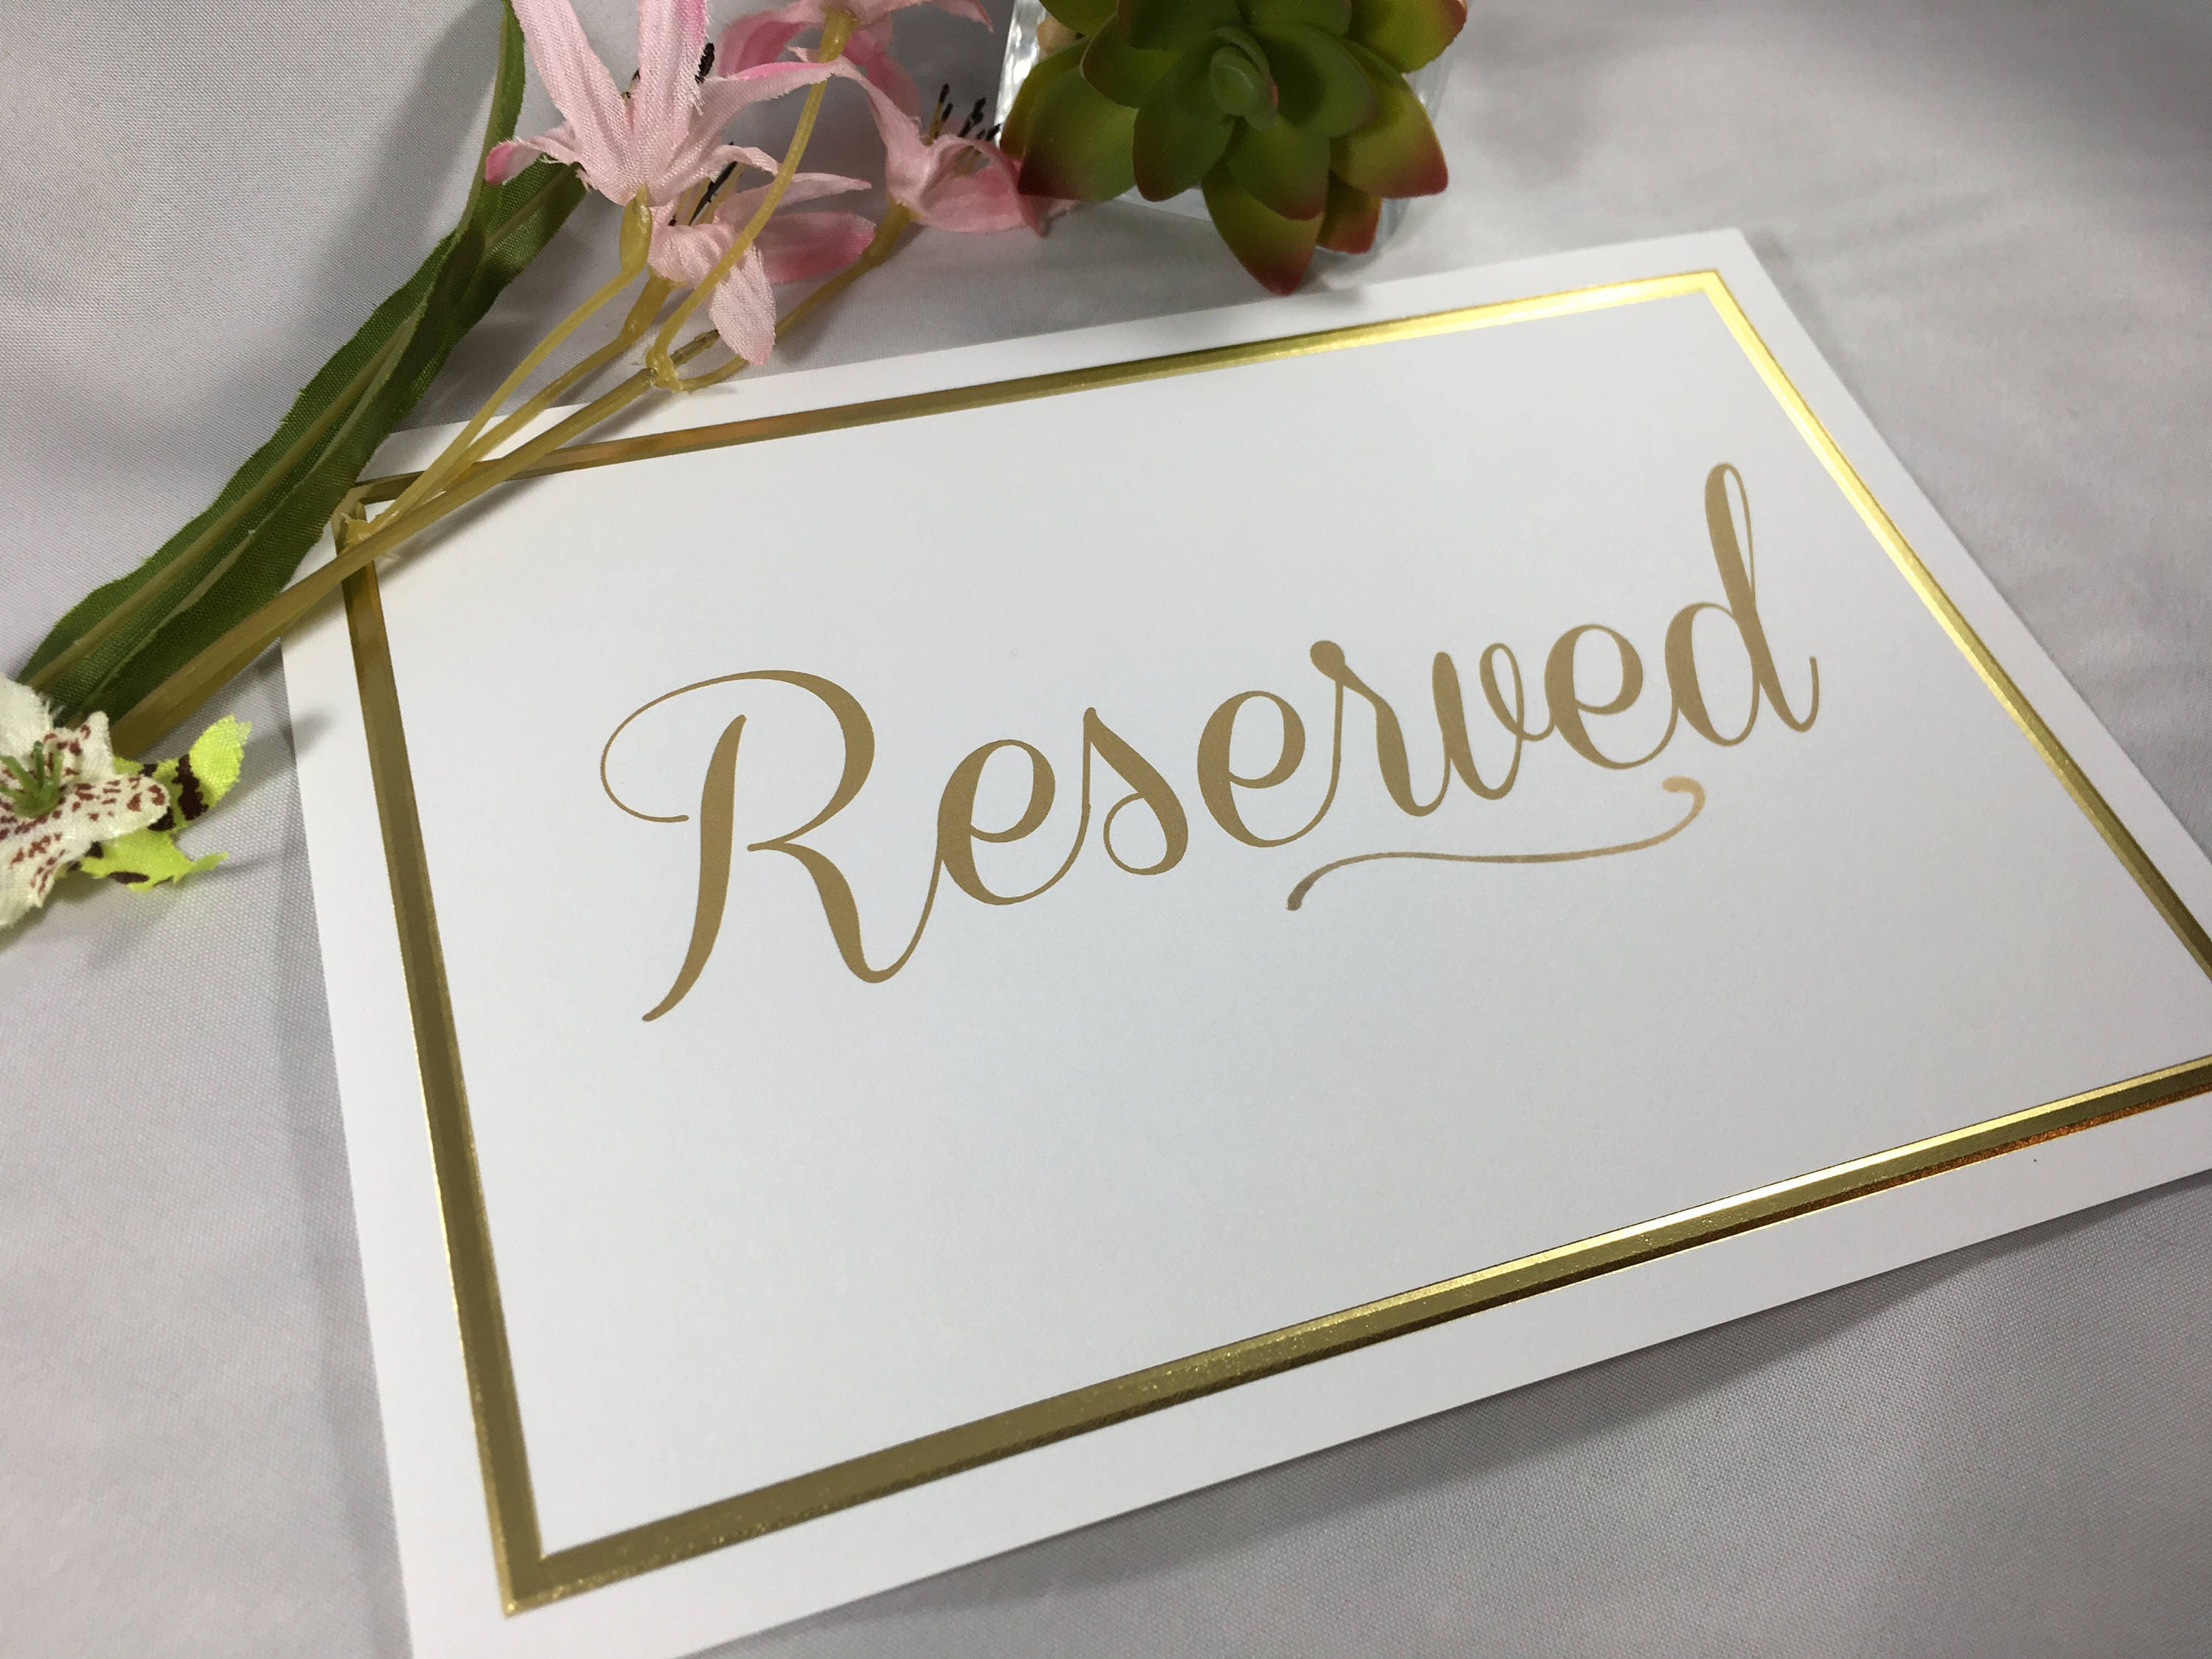 10 Elegant Gold Foil White and Gold Reserved Signs for Wedding ...